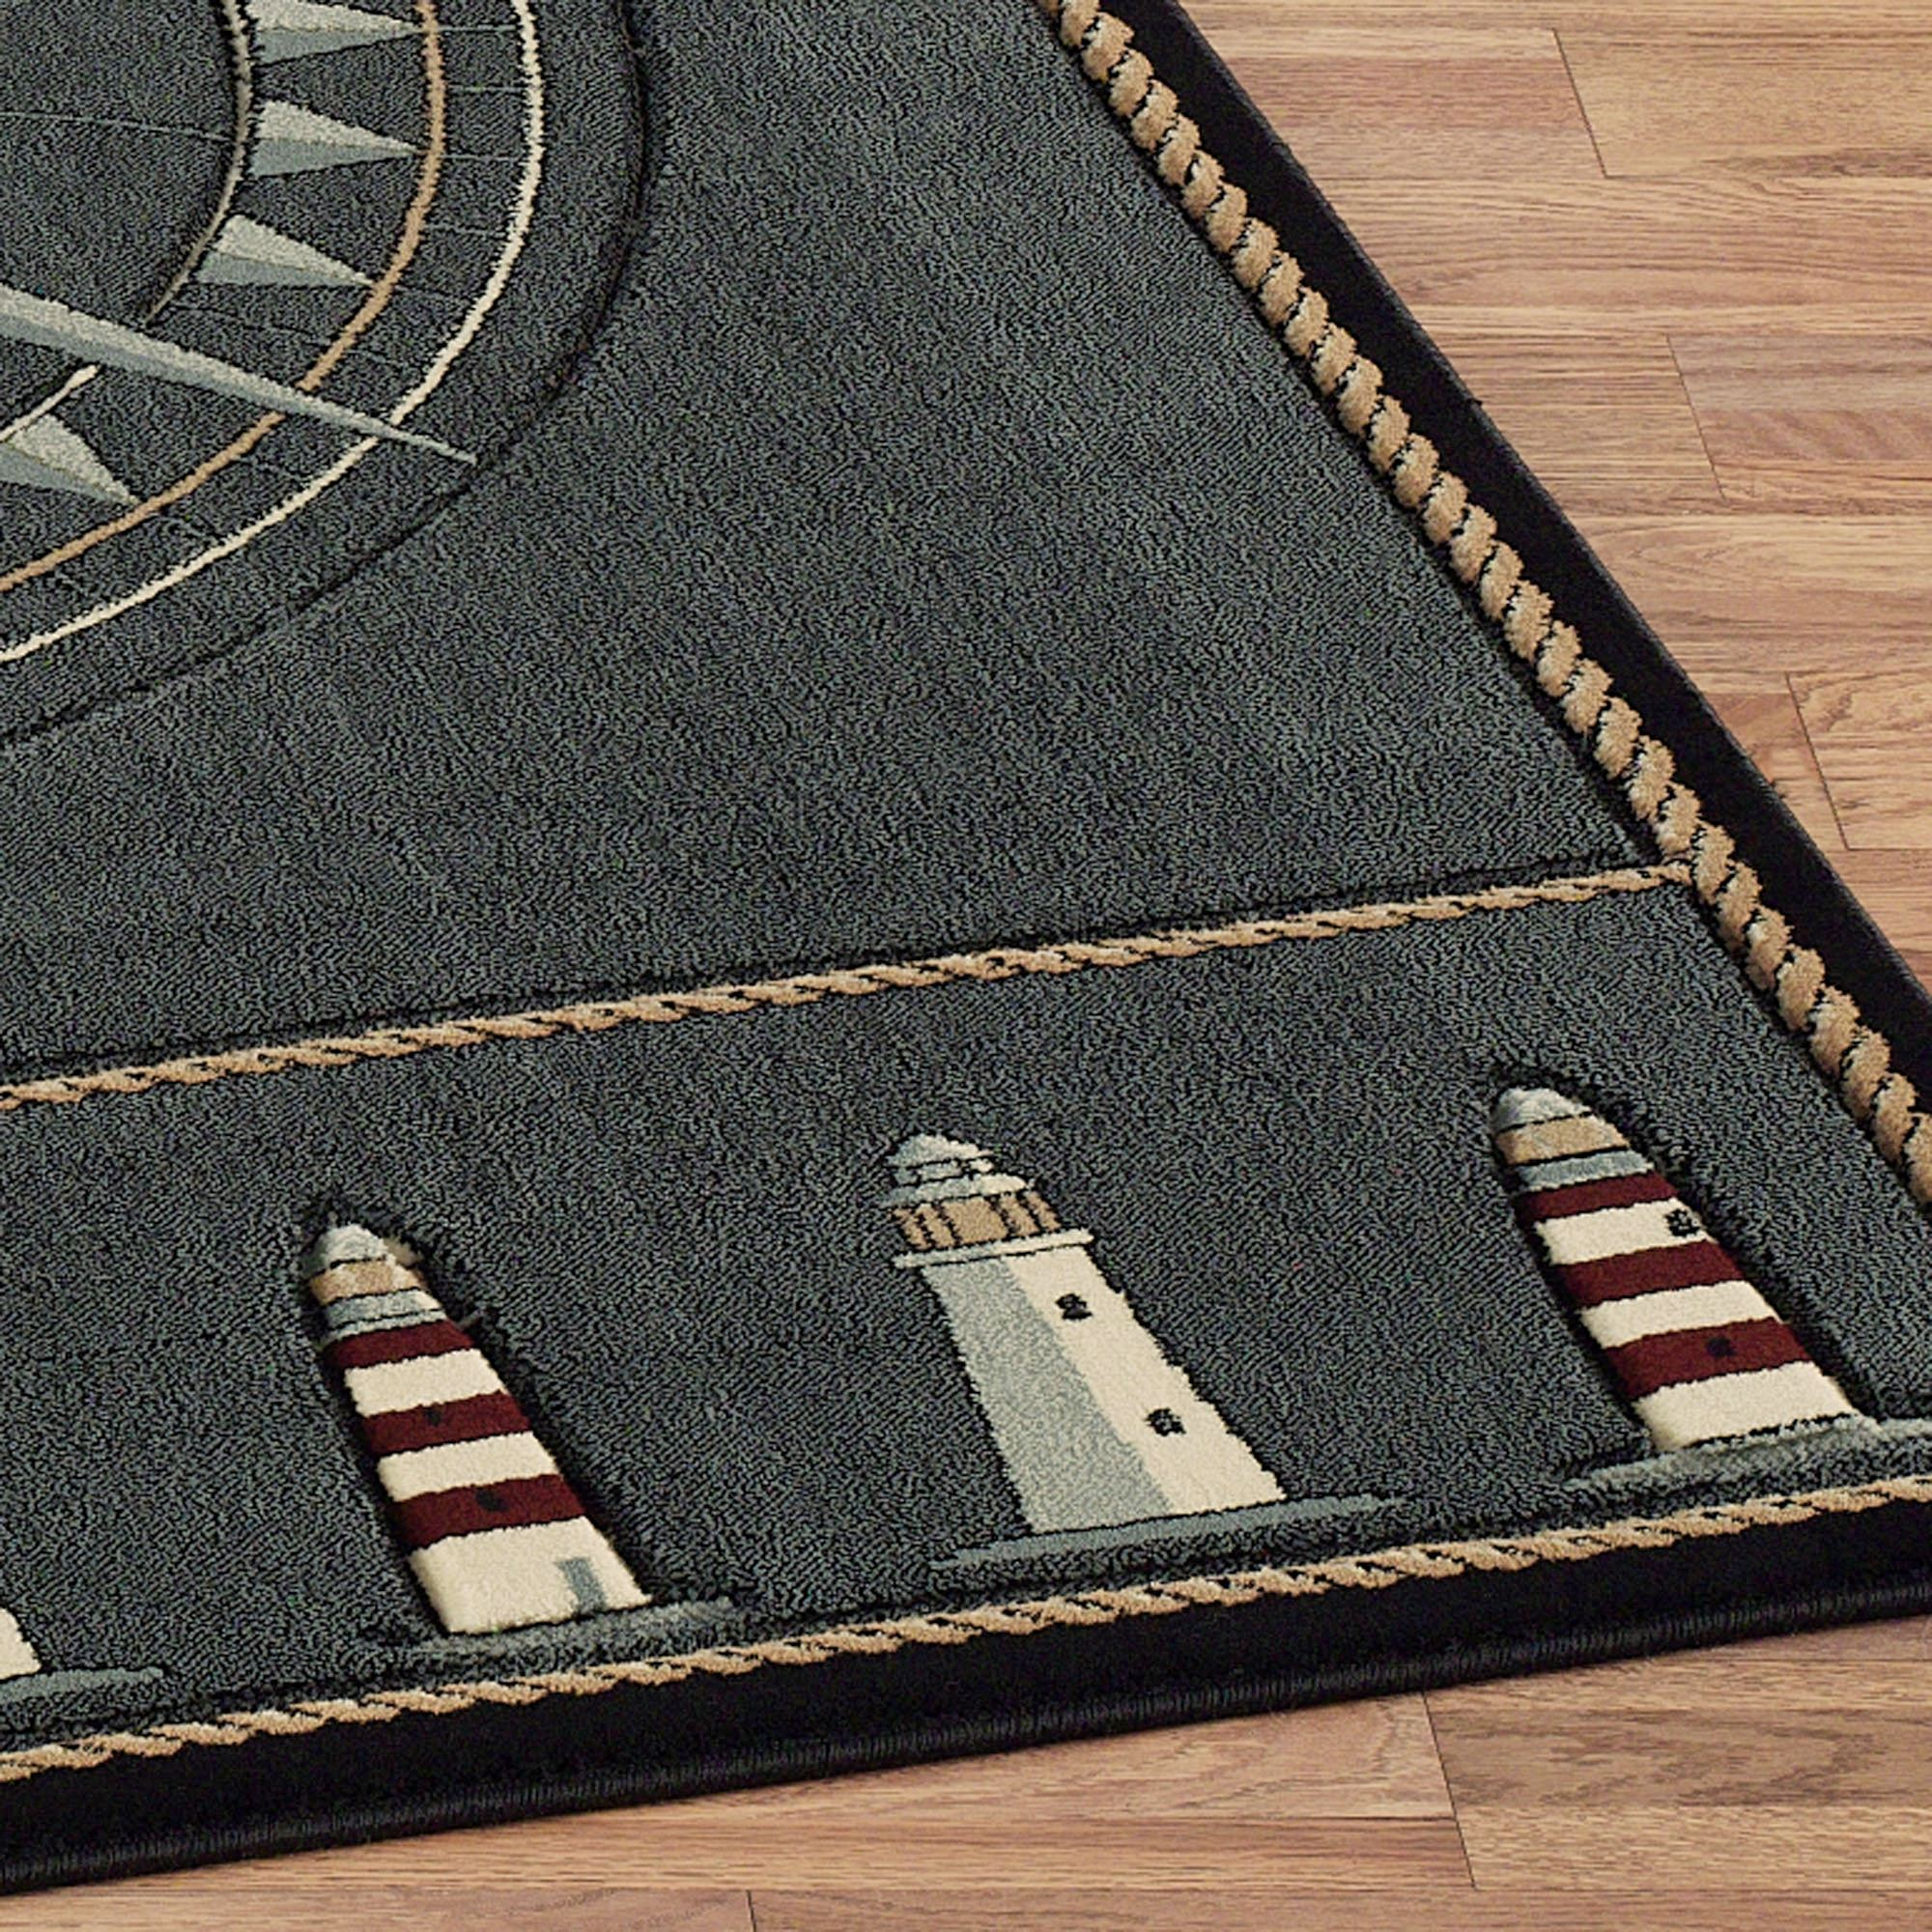 Compass Rose Rug Runner Grey Denim 27 X 74